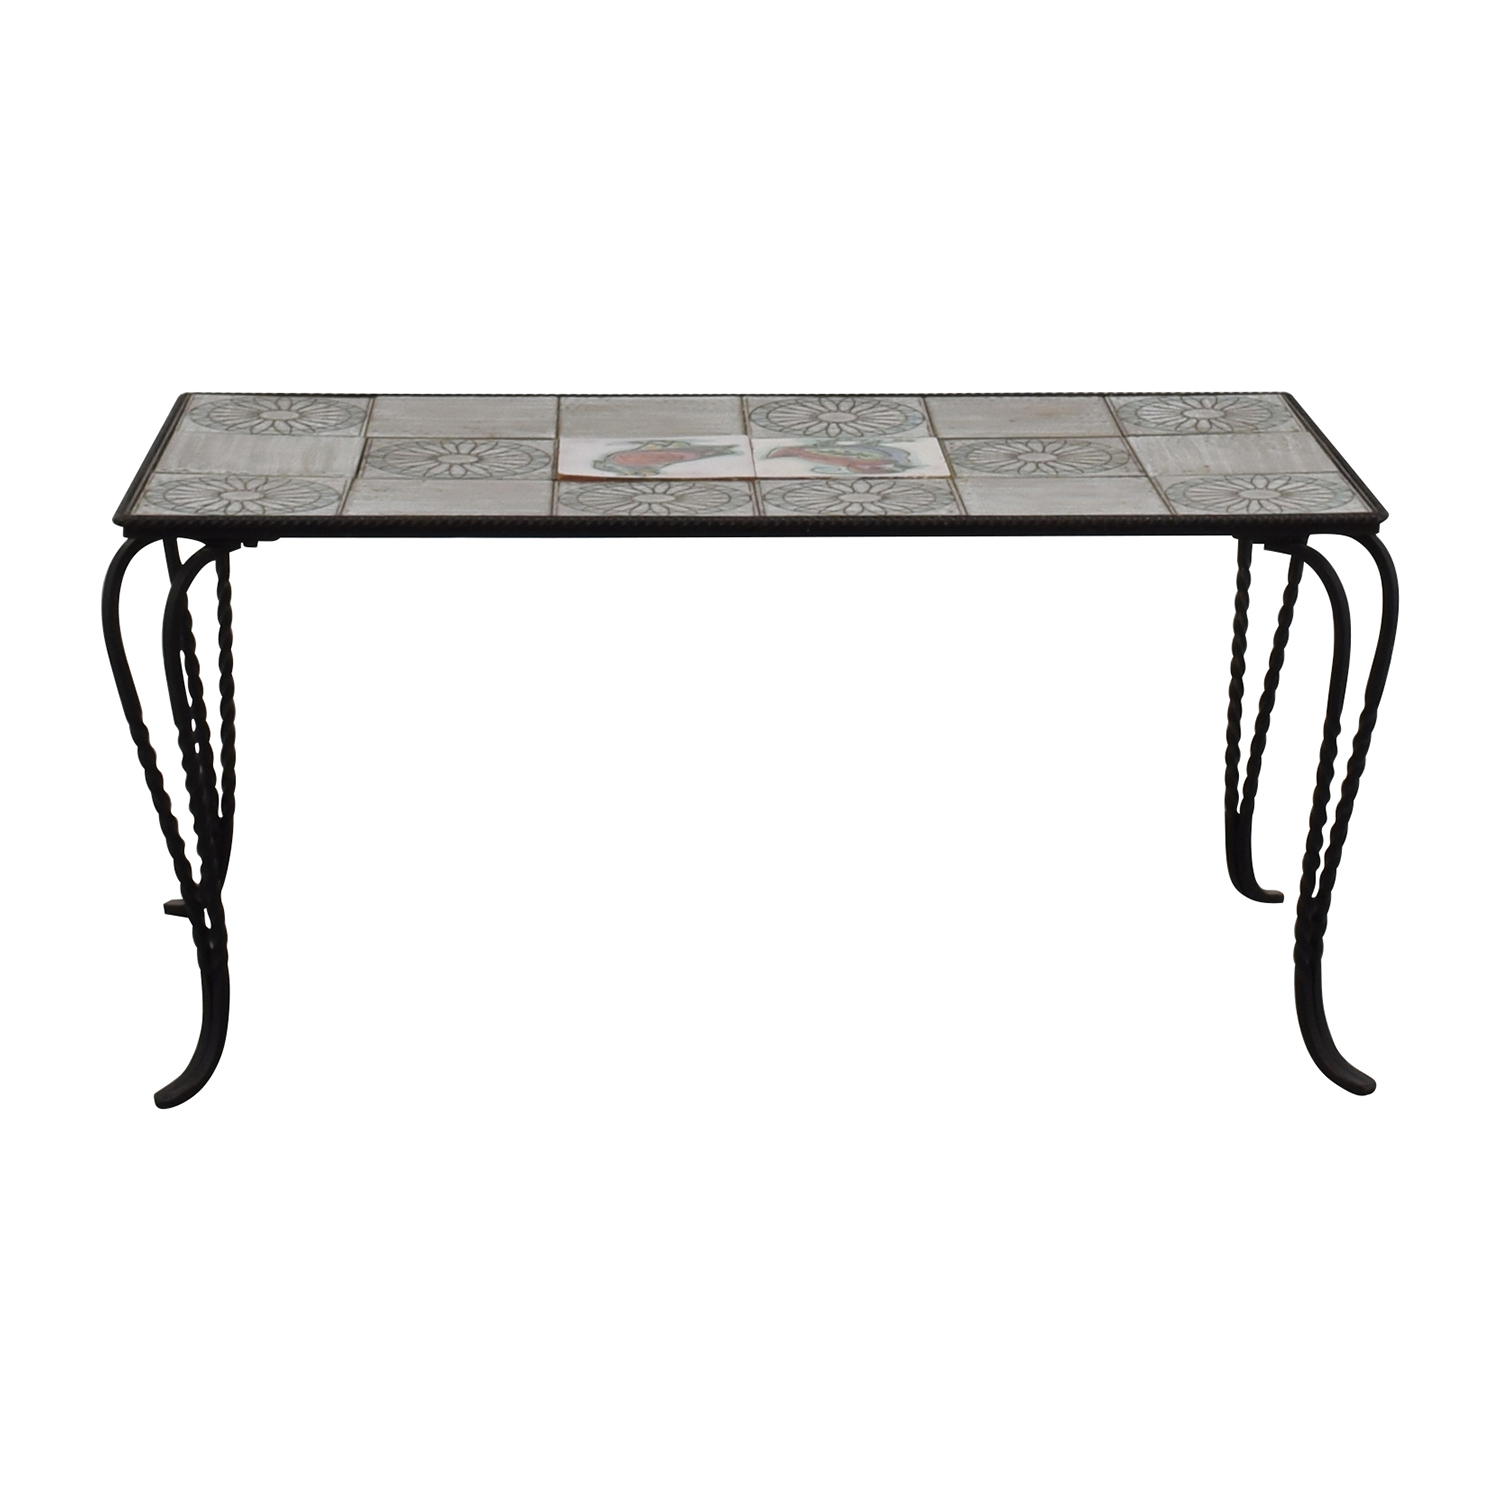 Wrought Iron Tile Table